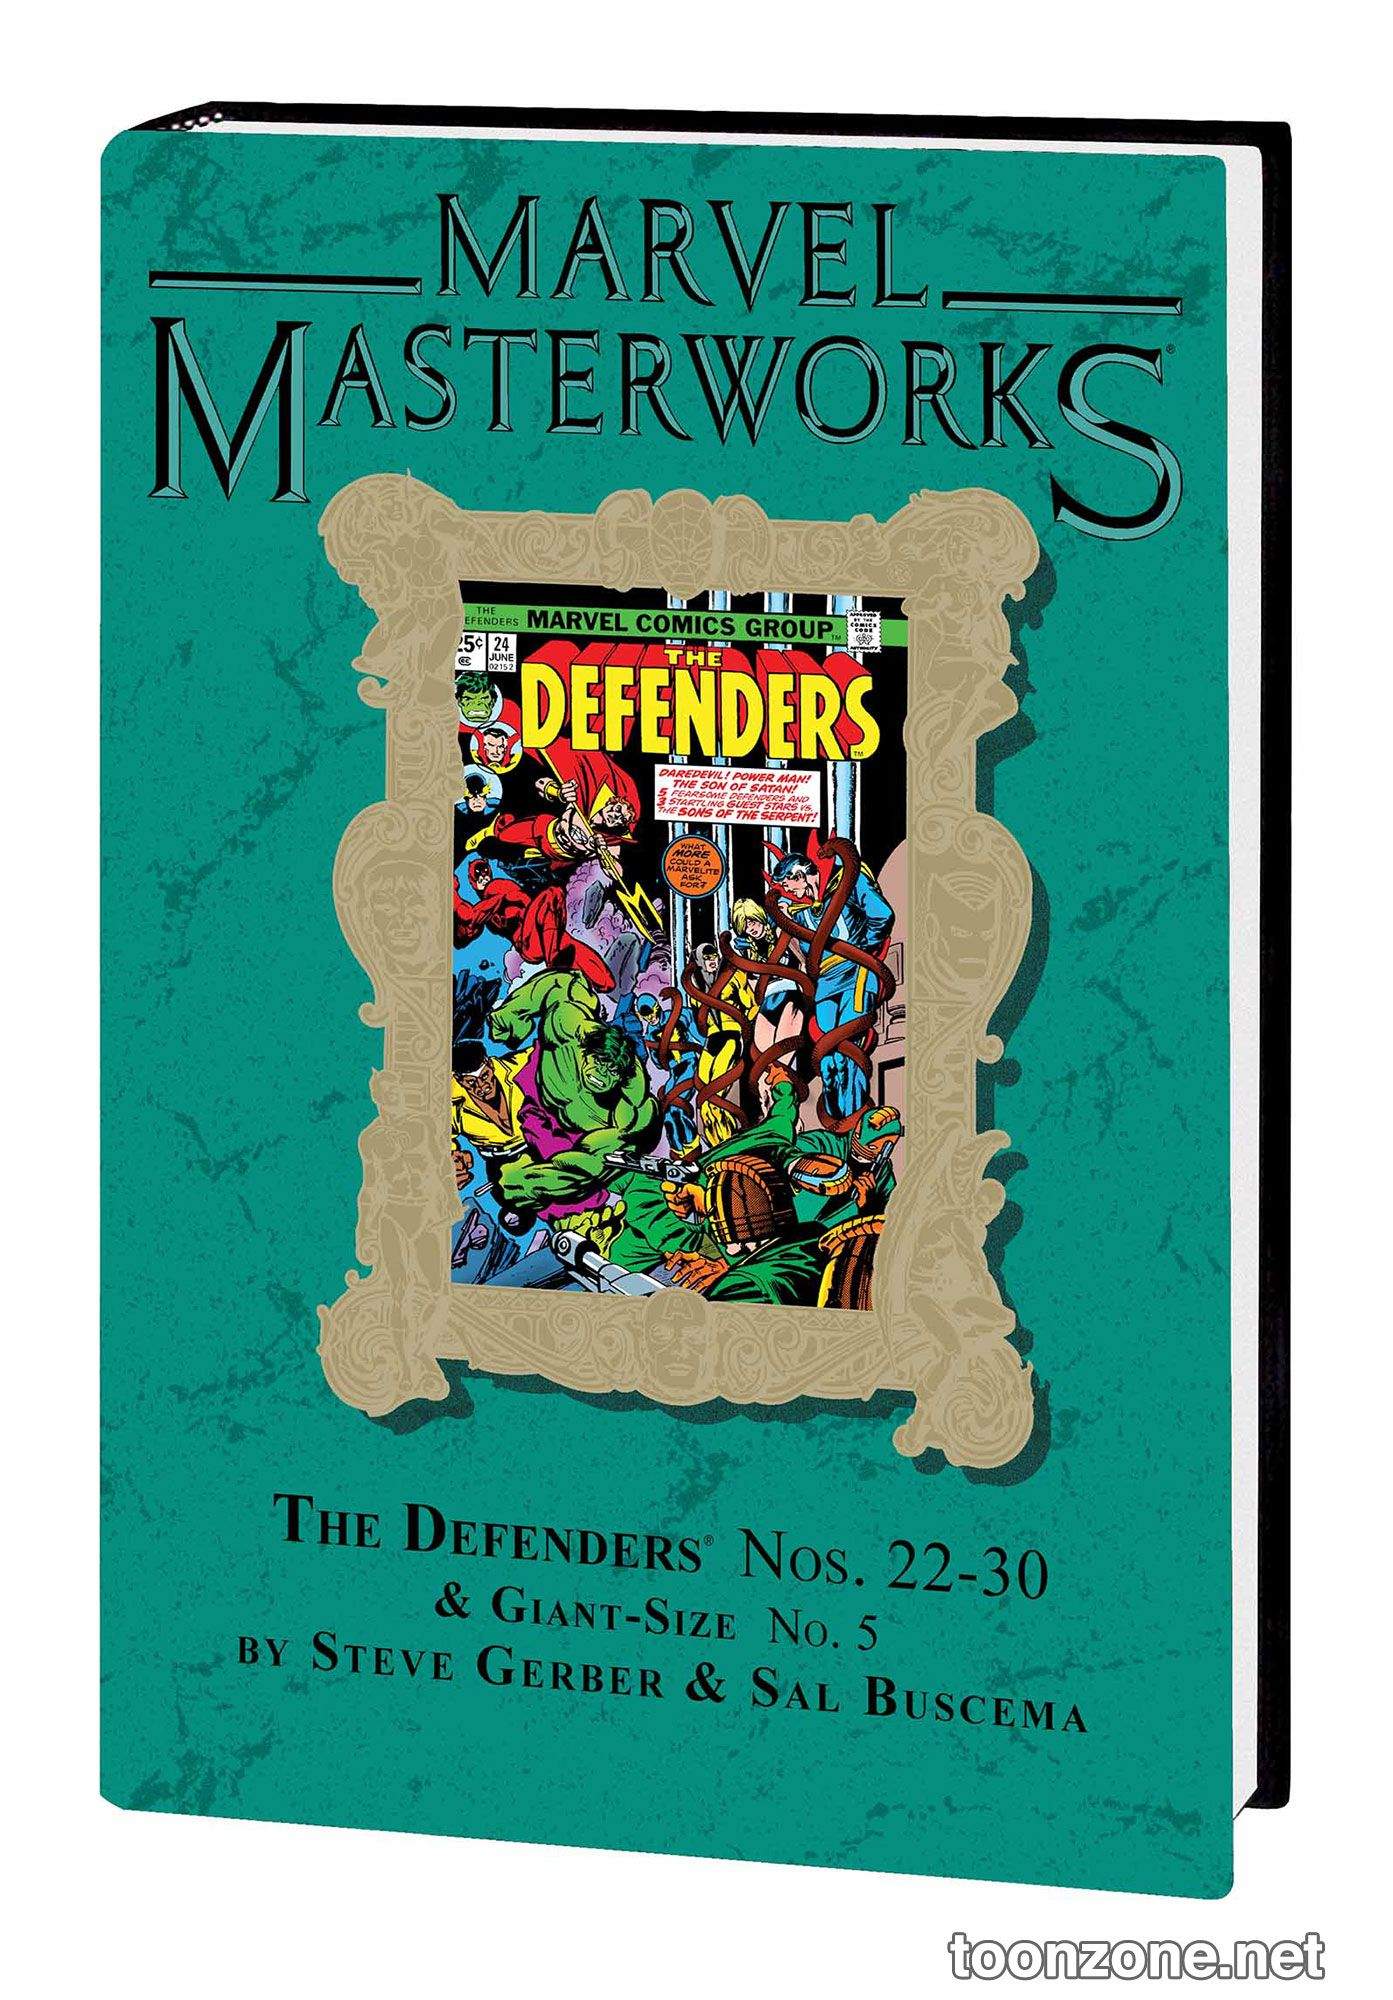 MARVEL MASTERWORKS: THE DEFENDERS VOL. 4 HC — VARIANT EDITION VOL. 203 (DM ONLY)